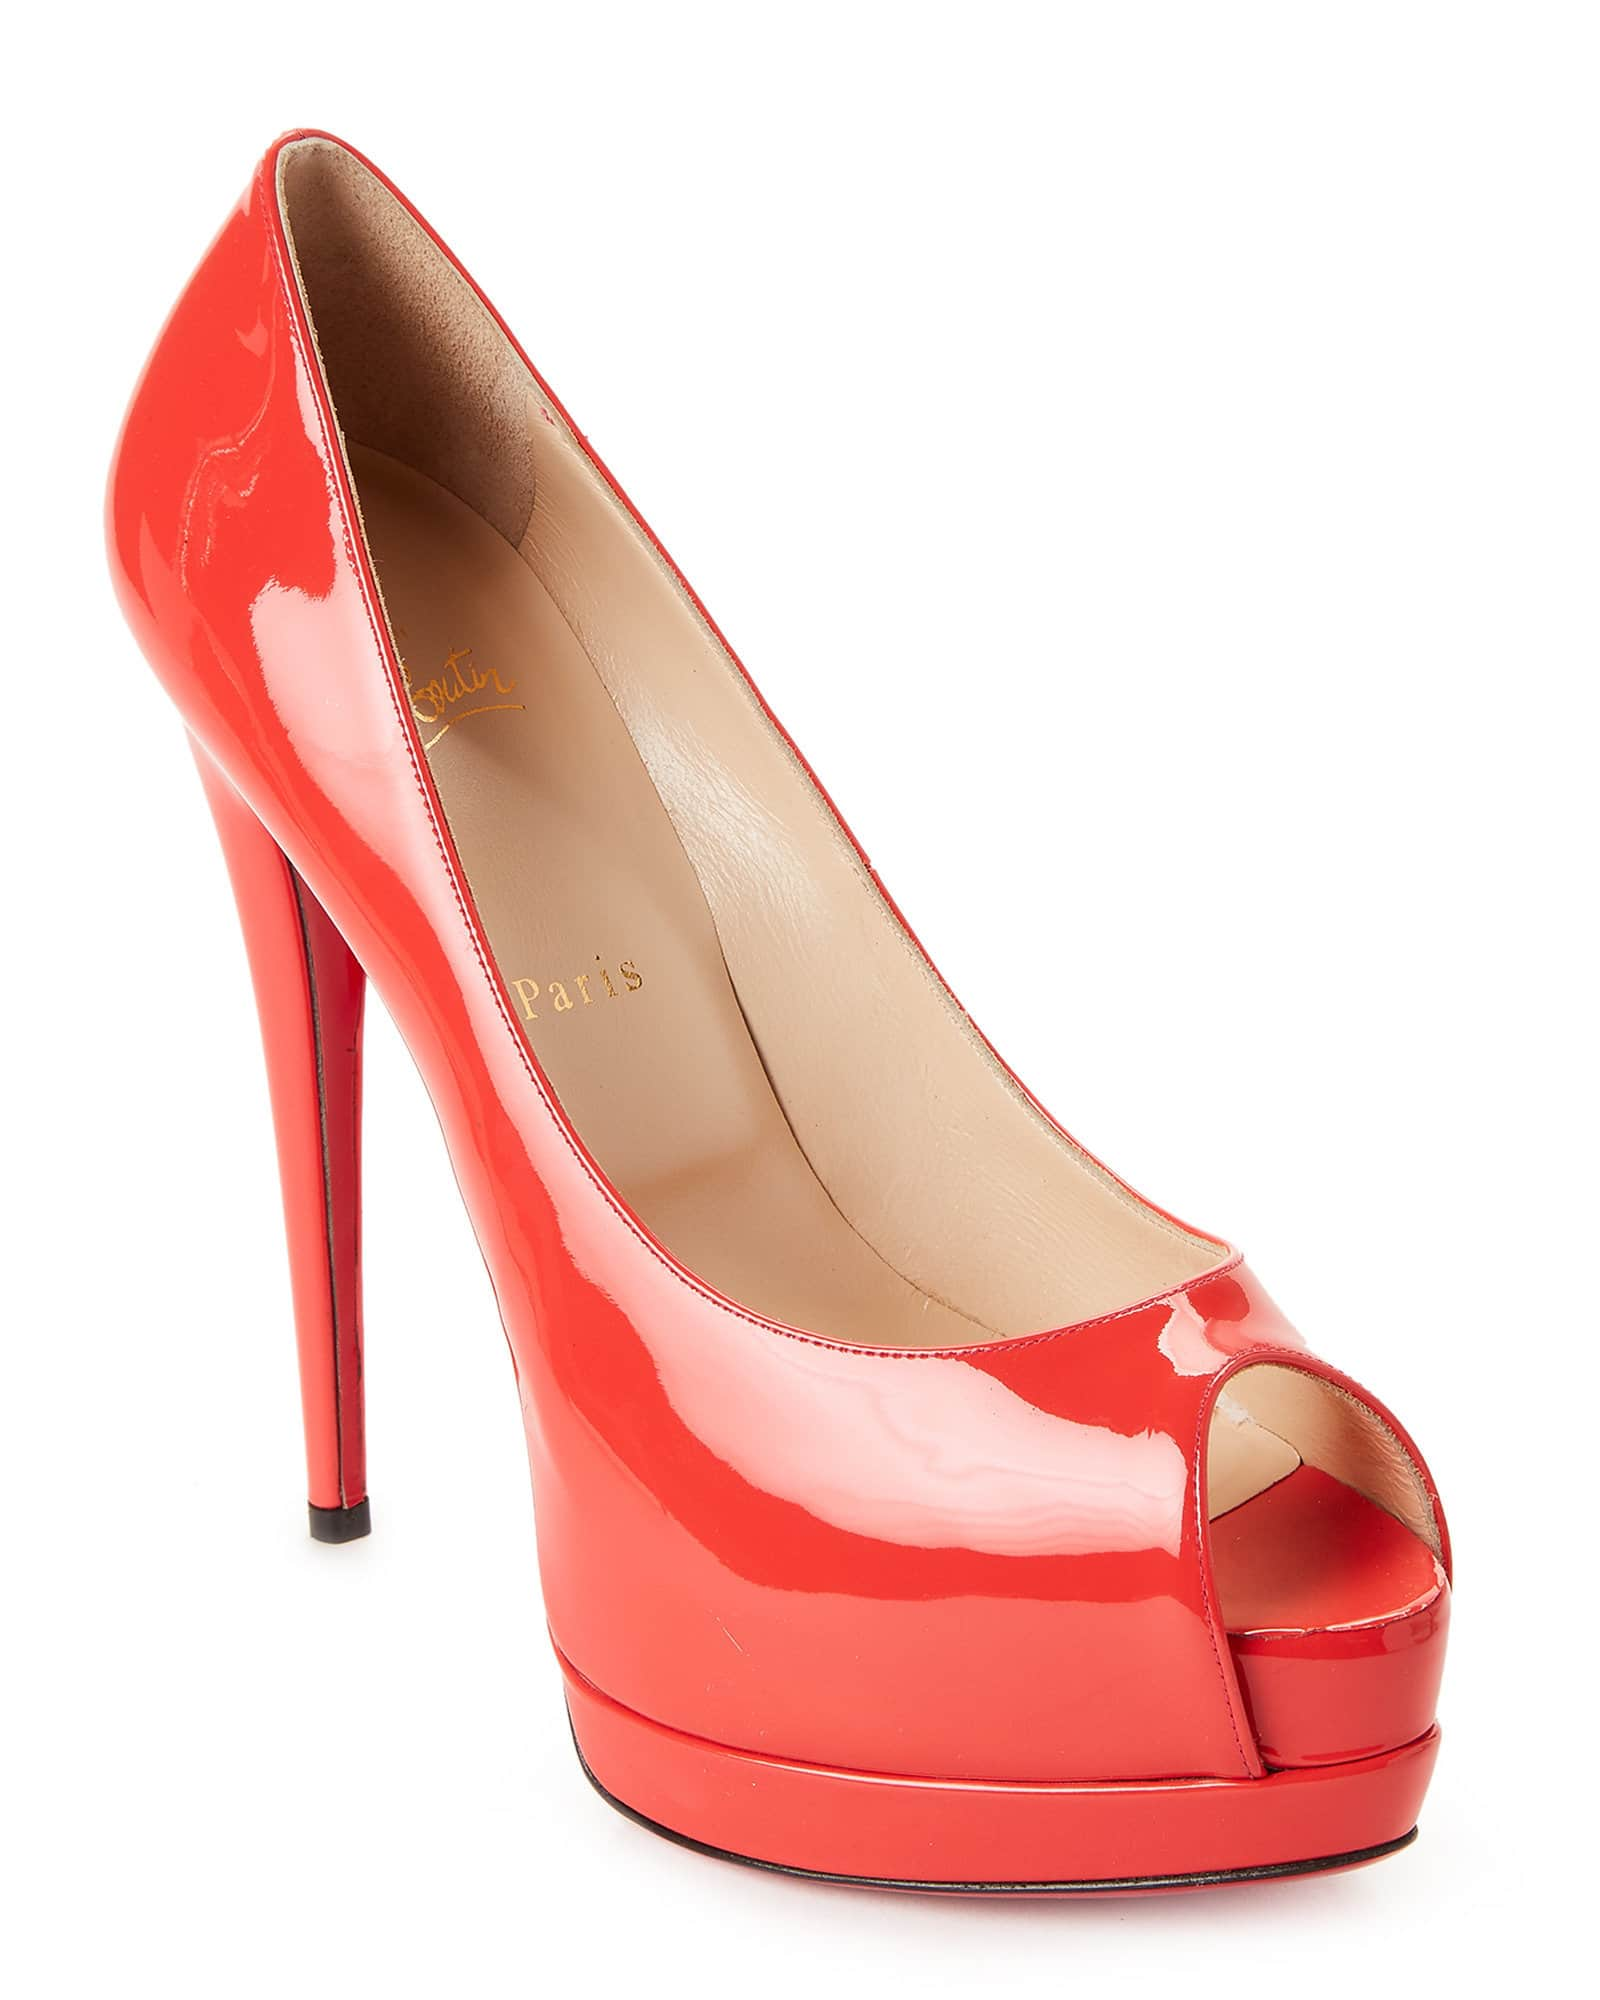 6830900e7c9 Christian Louboutin Palais Peep Toe Platform Pumps (Various Colors ...